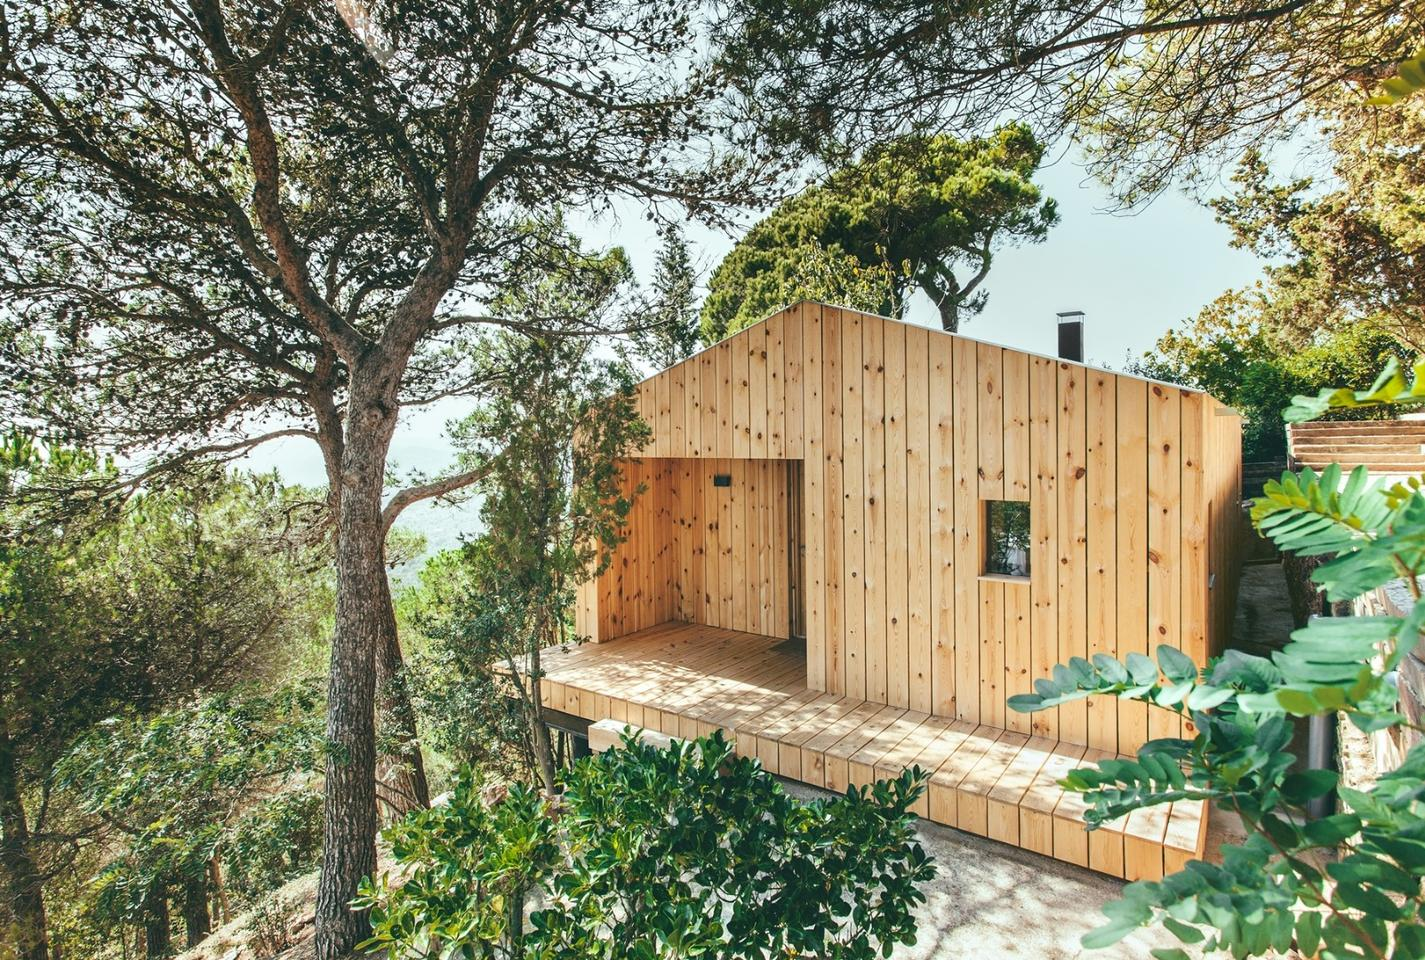 Wood Studio House is located in Sant Cugat, Spain